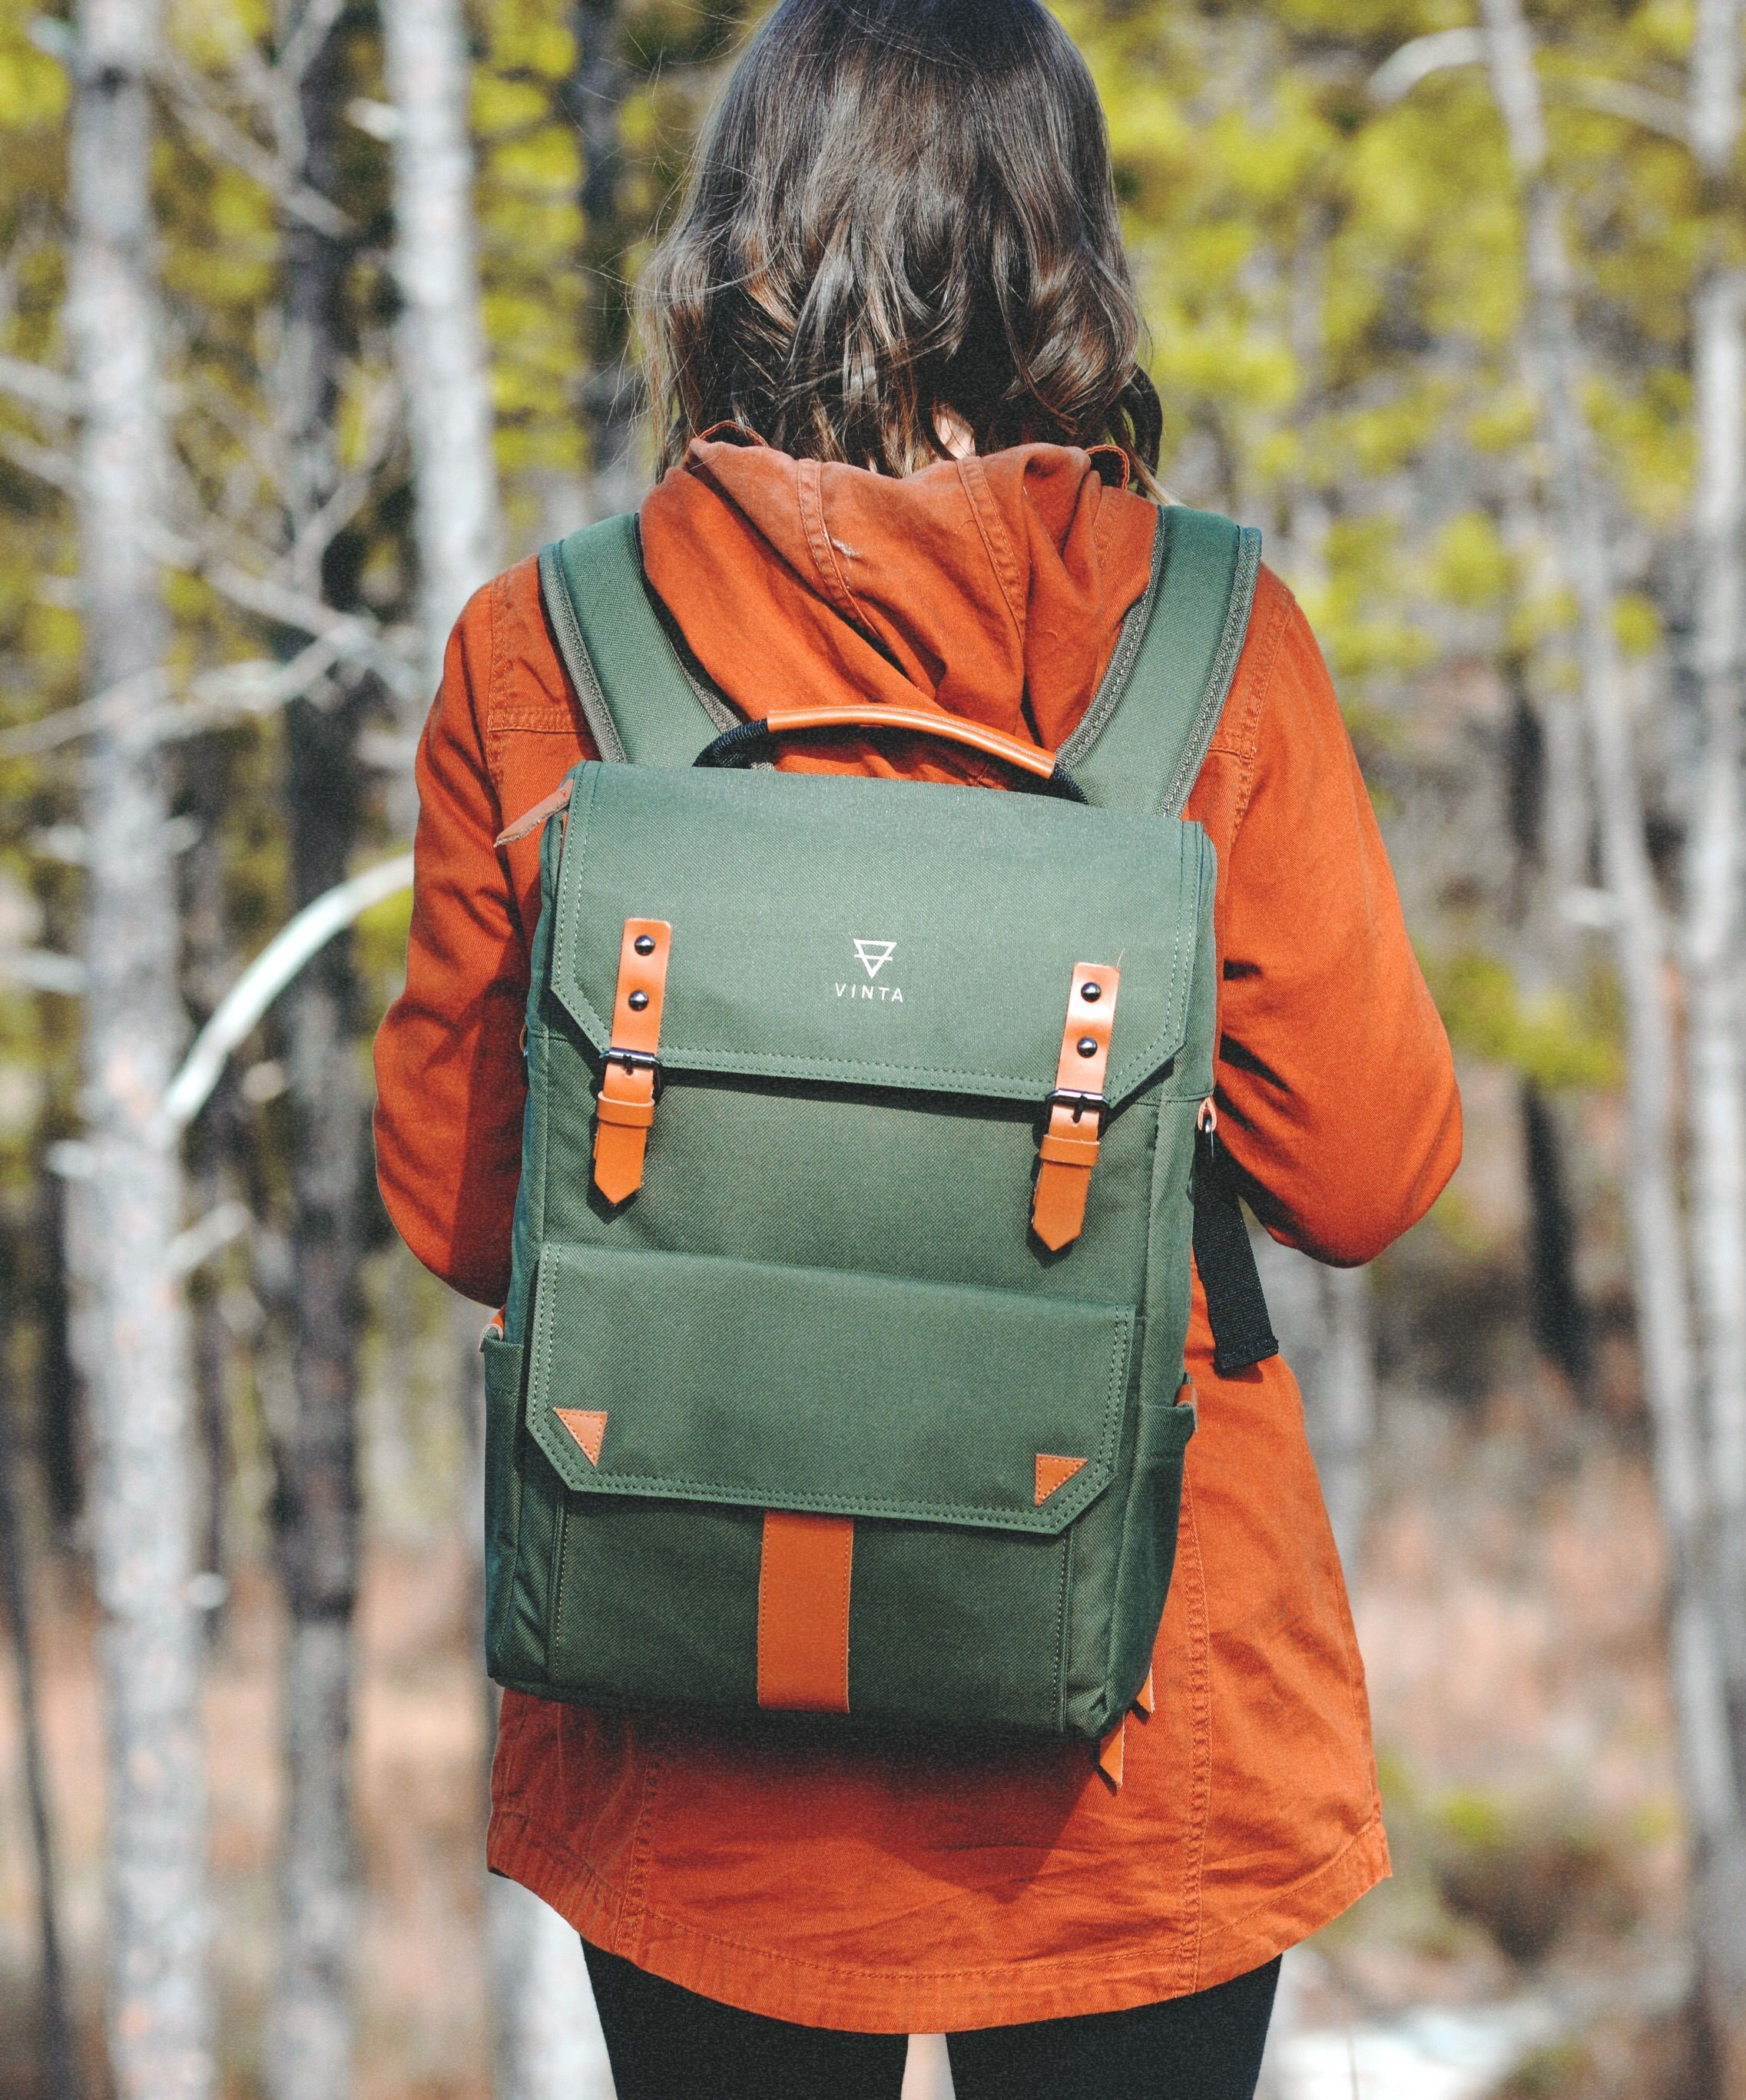 Vinta backpack